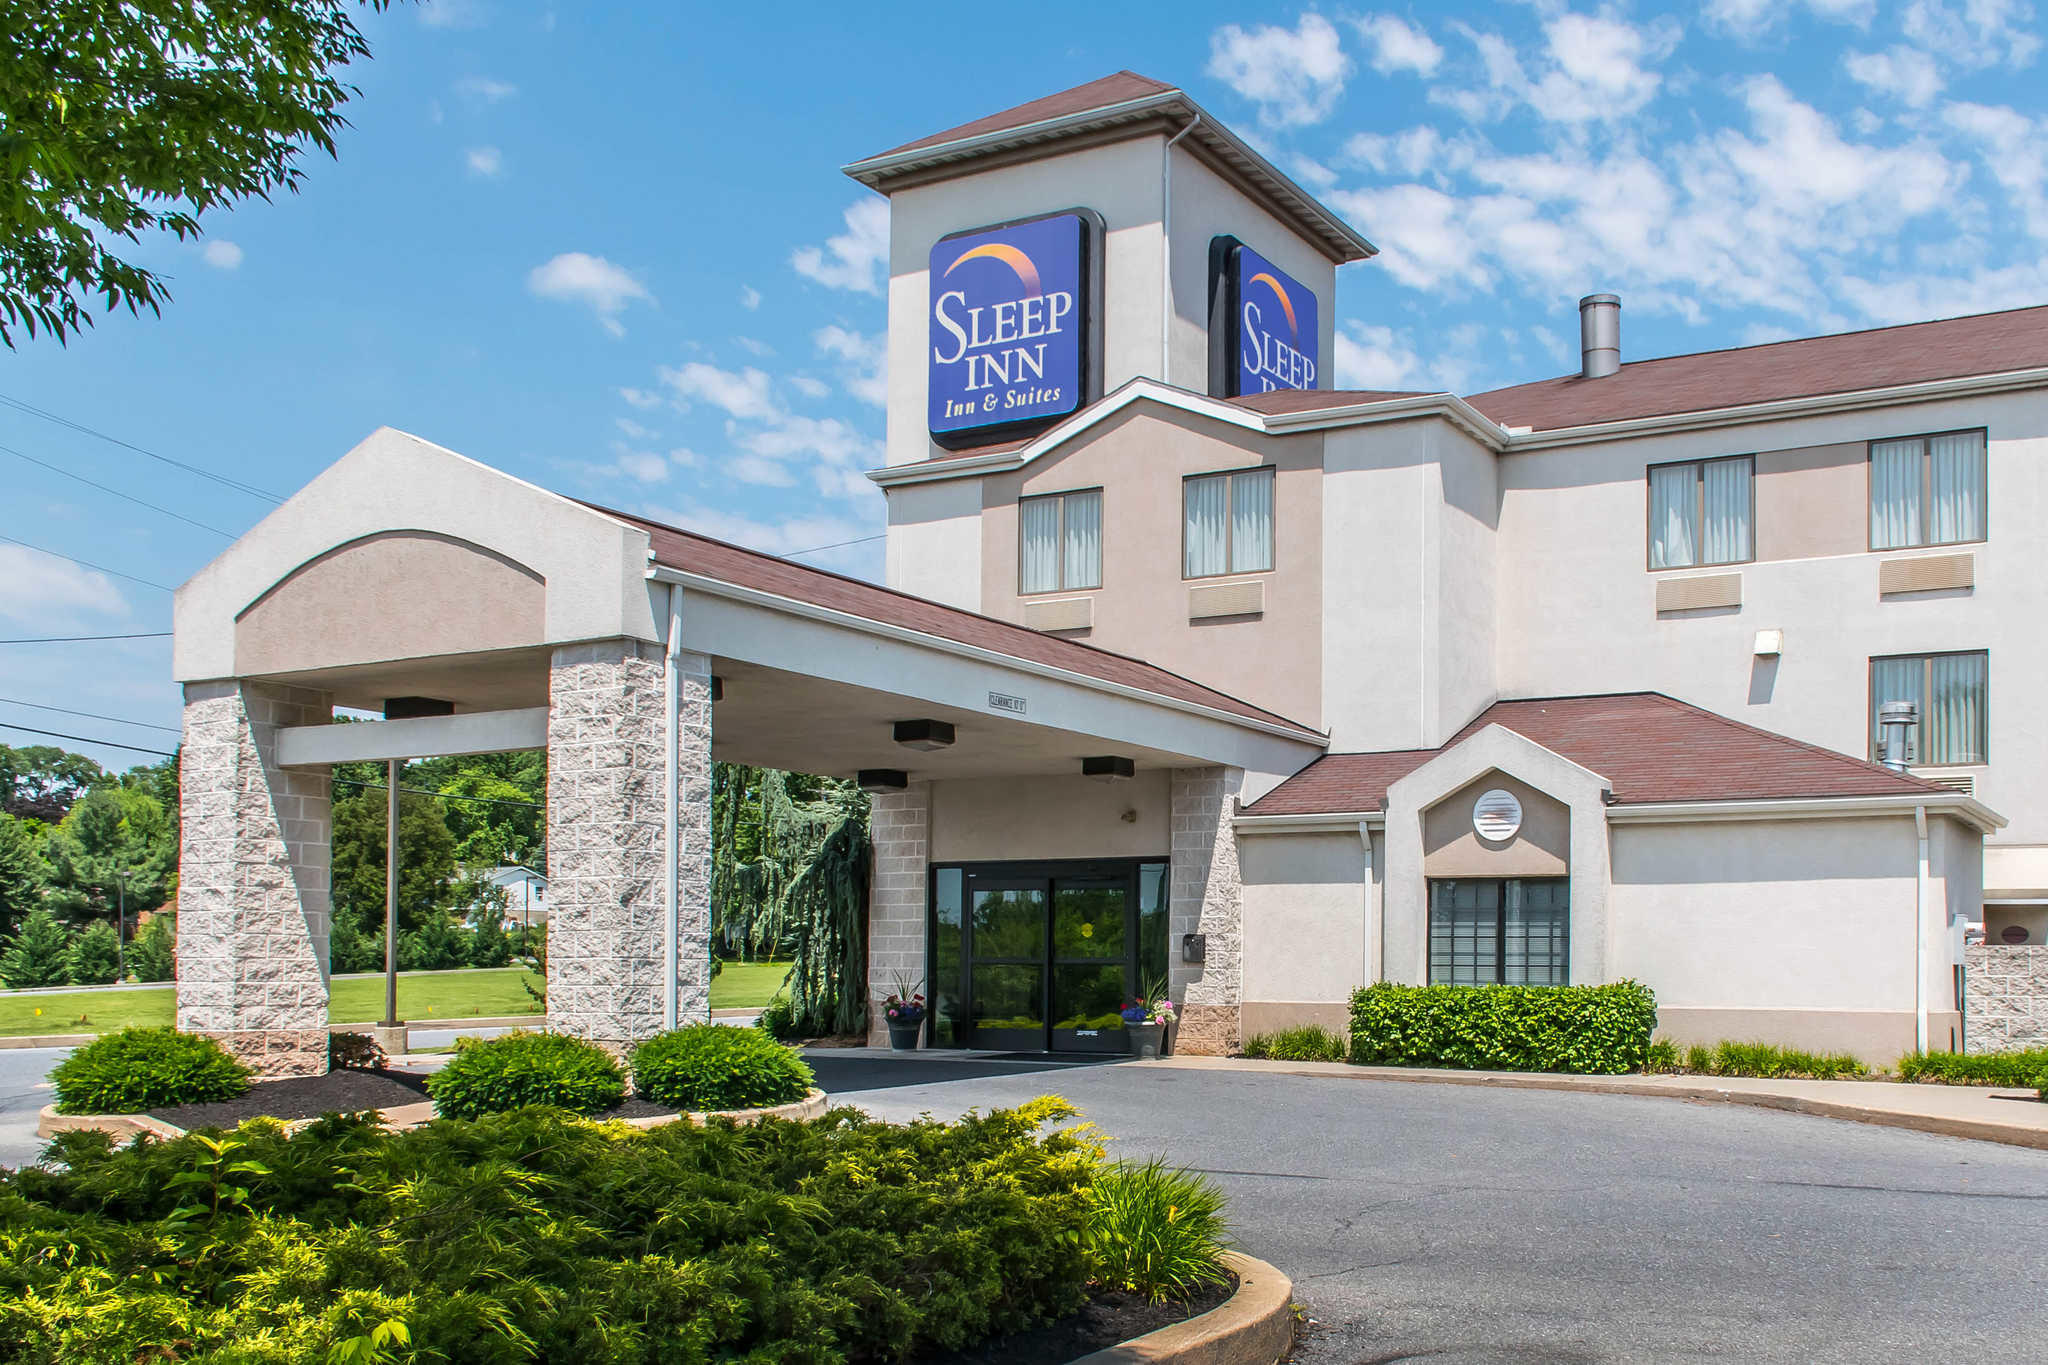 Sleep Inn & Suites of Lancaster County image 1